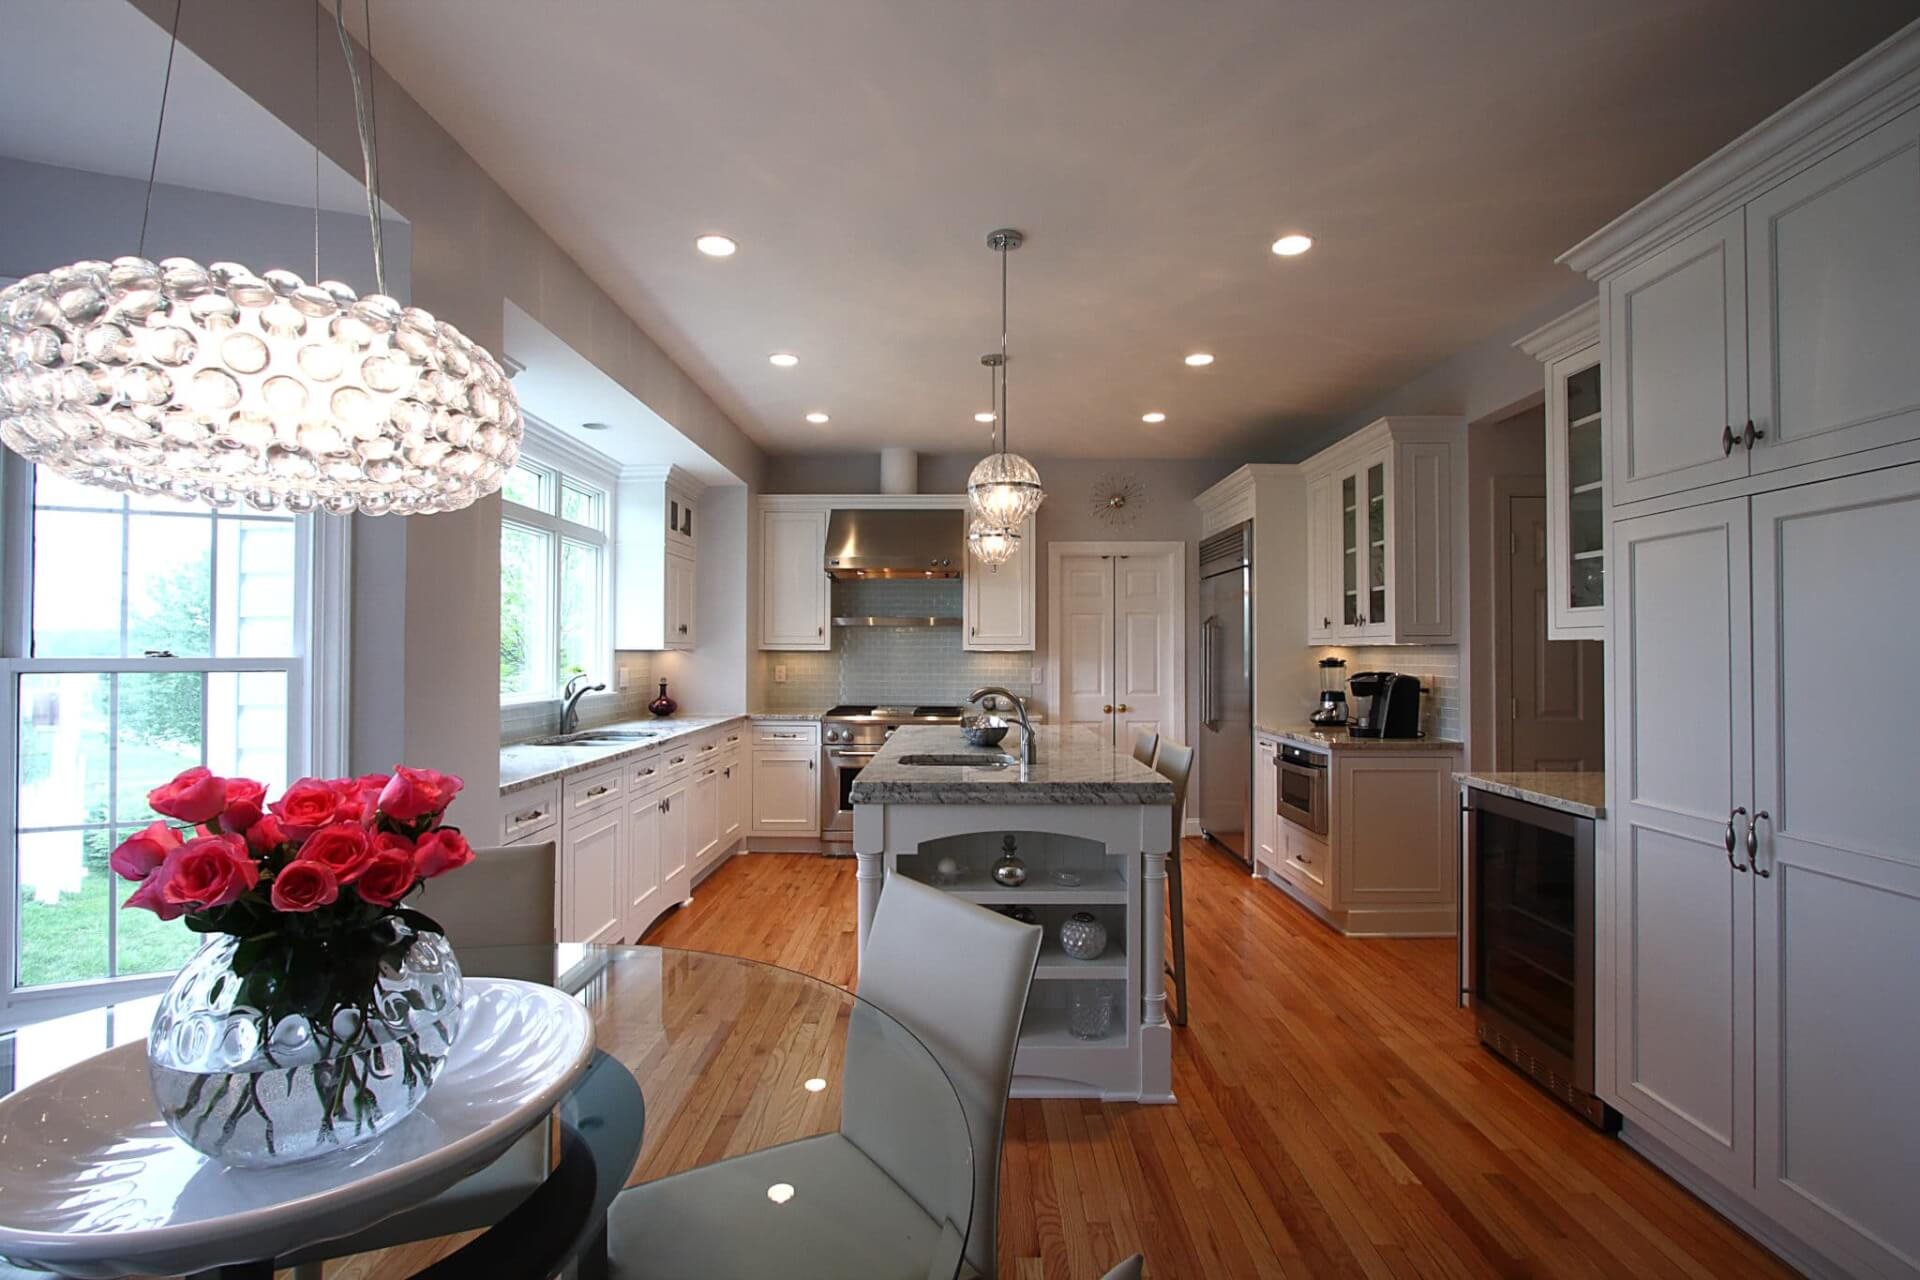 kitchen and bath remodel white round table chairs voted best northern virginia remodeling